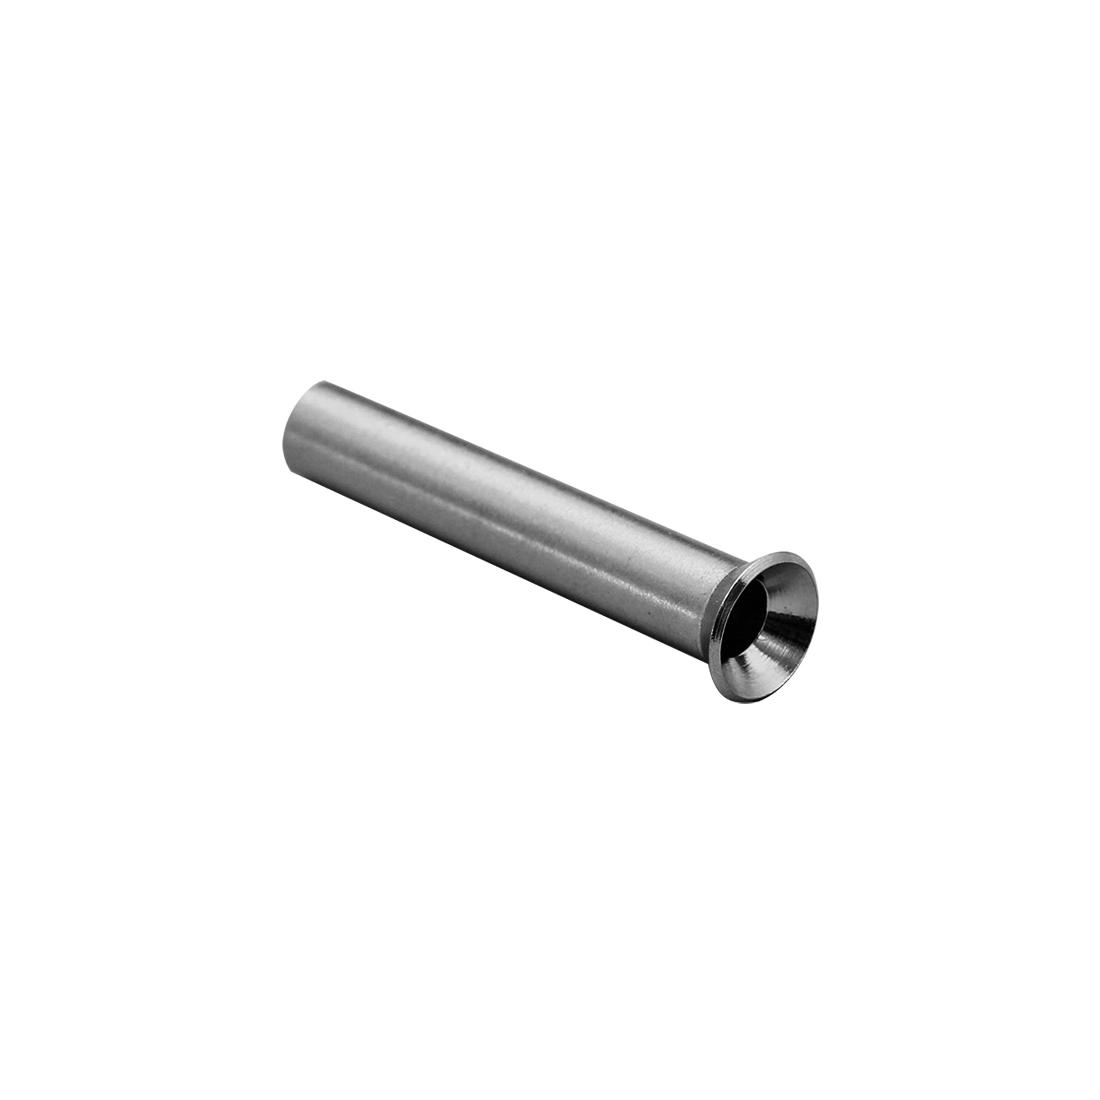 Picture of ATLANTIS RAILEASY C0915-0438 Railing Cable Sleeve, Stainless Steel, 10, Pack